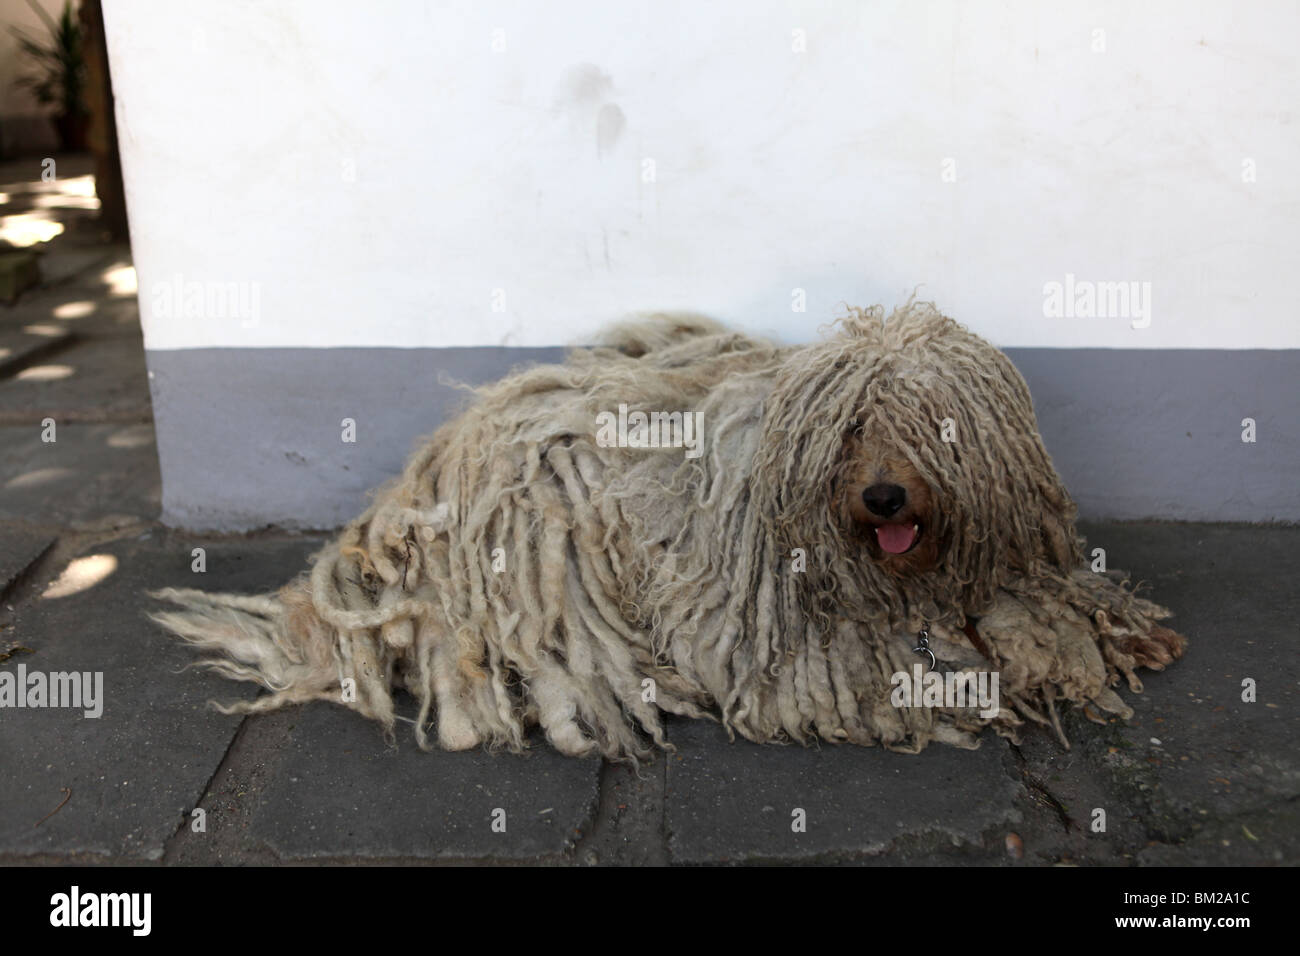 A Puli or Hungarian Water Dog known for its corded coat, similar to dreadlocks in Kecskemét, Hungary, Europe. - Stock Image